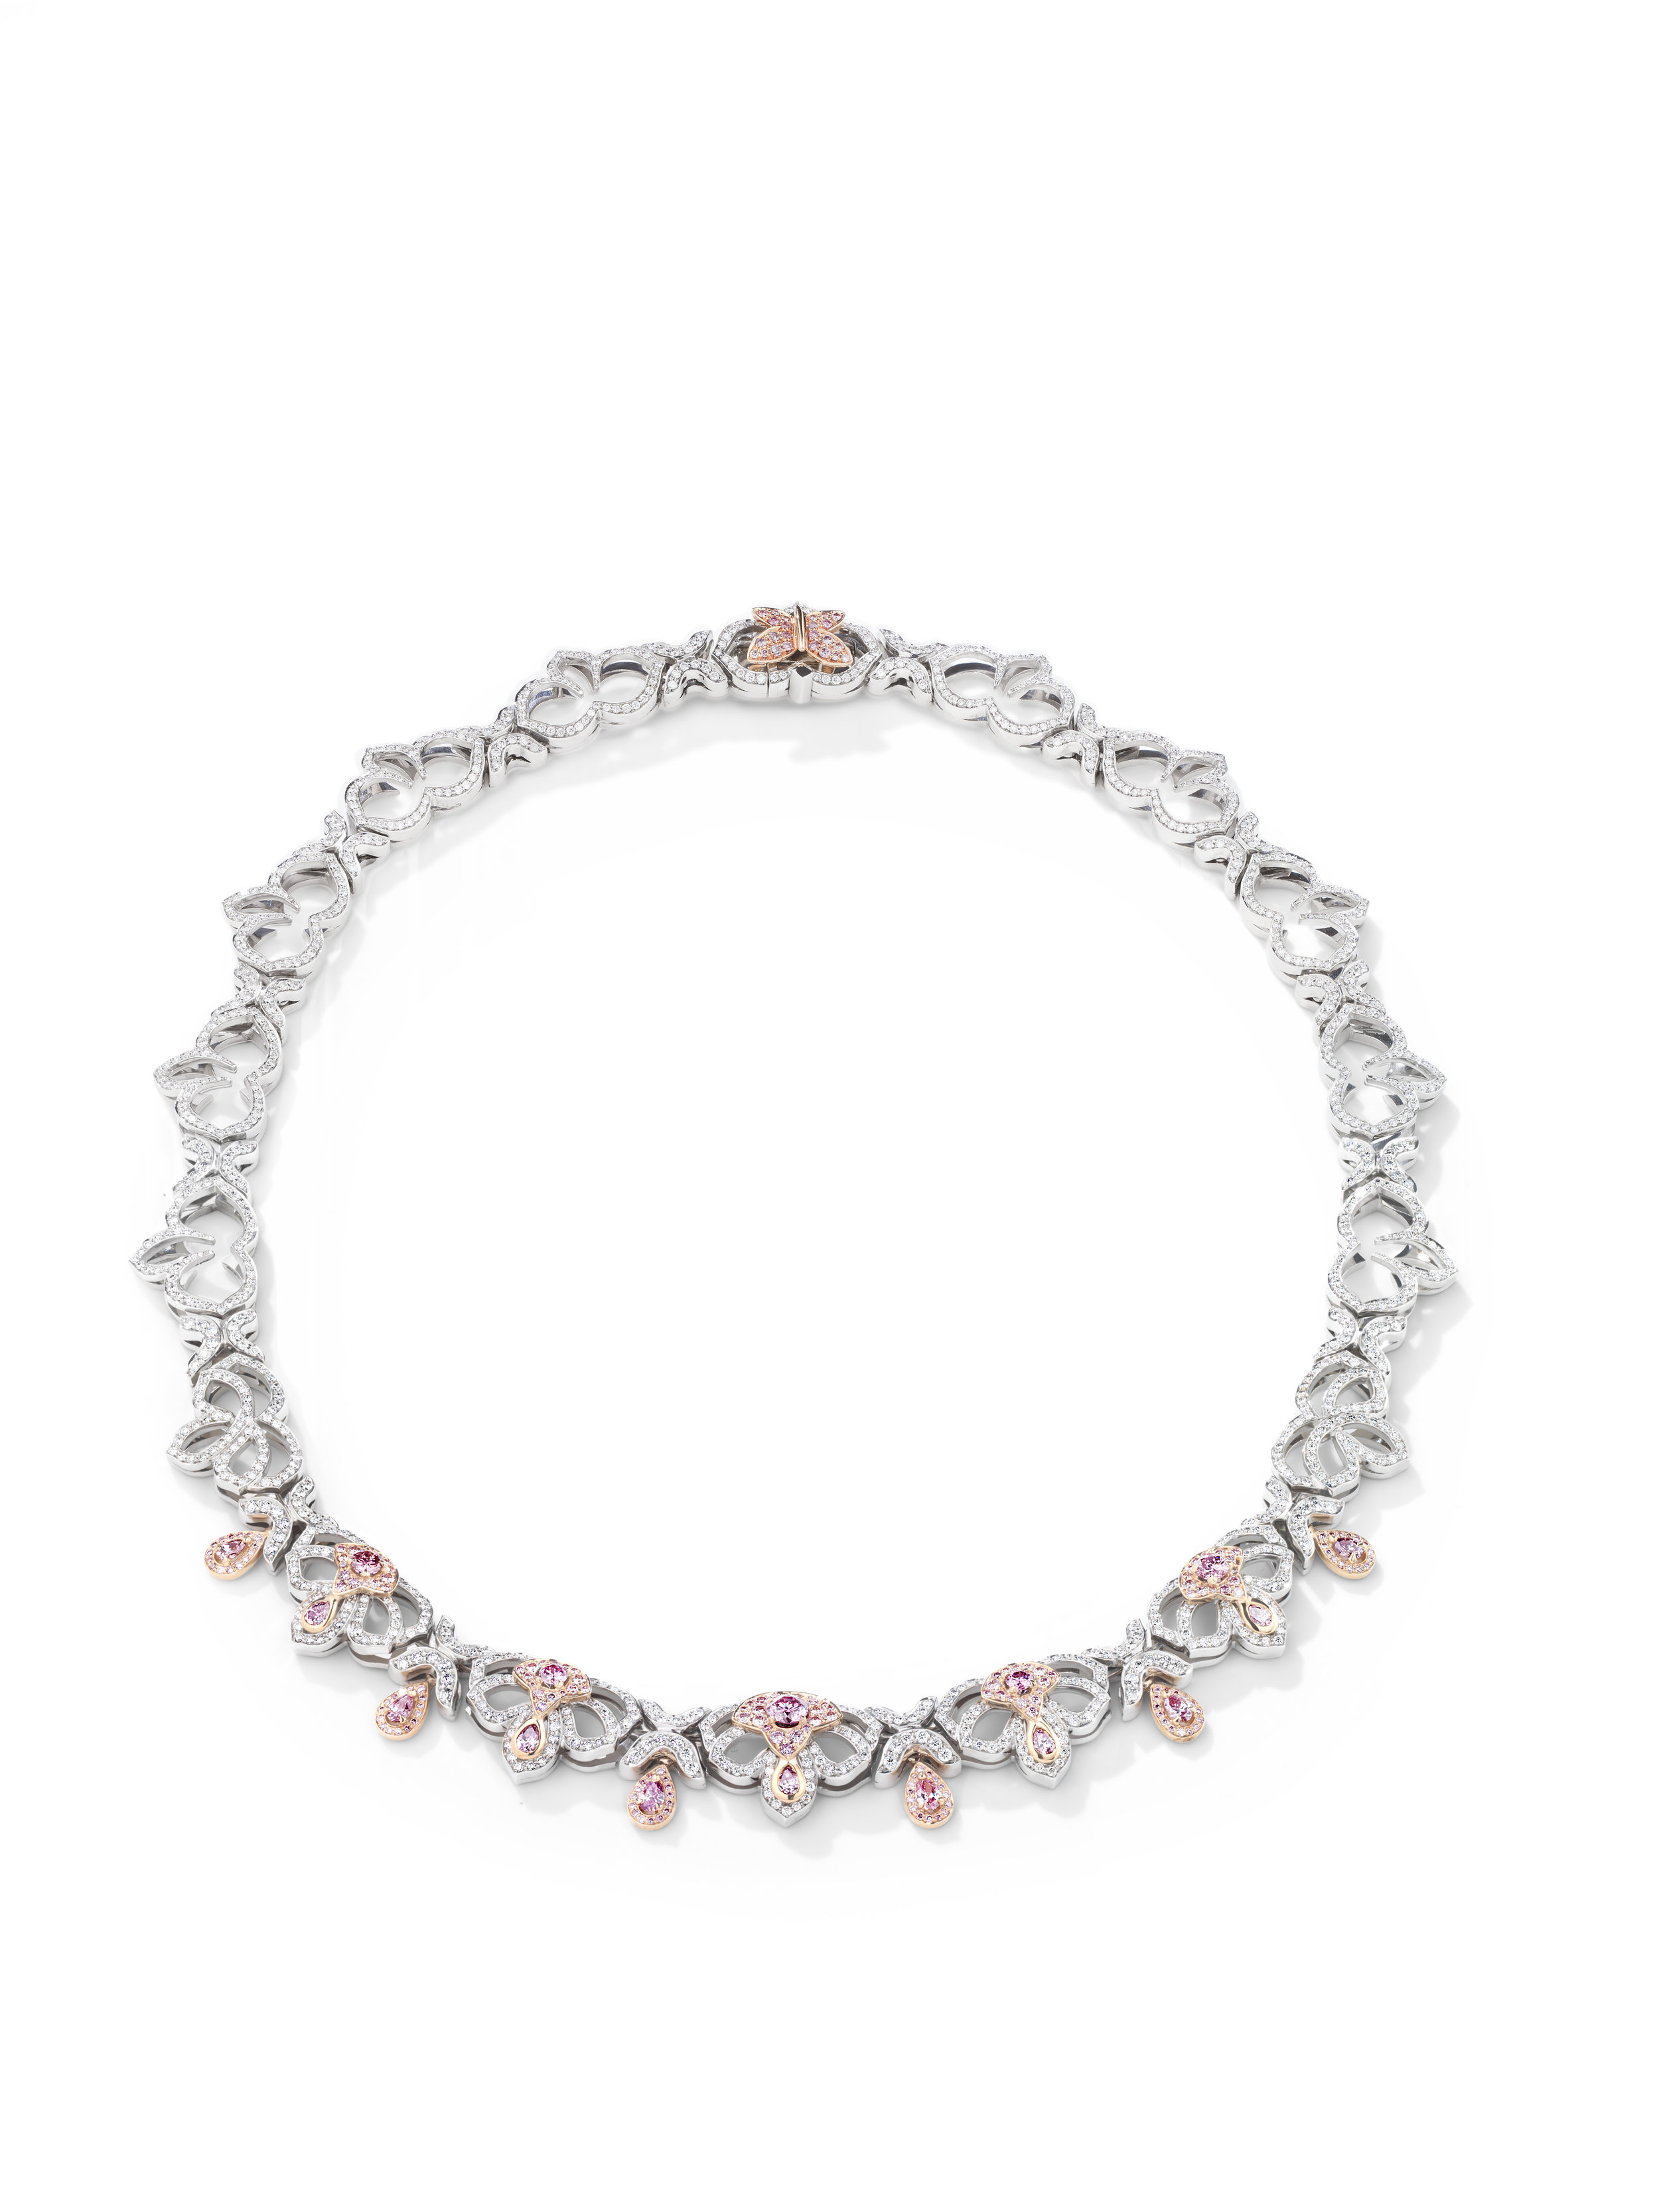 EDEN COLLECTION - PRICE UPON APPLICATION  Flowers are nature's jewellery — they've been a source of inspiration for as long as jewellery itself. Add the colourful flight of a butterfly and you've captured the essence of a perfect summer's day. Top it off with a strawberry pop of pink diamonds.  IMAGE: Boodles 'Eden' necklace featuring pink and white diamonds set in platinum.  CONTACT | boodles.com